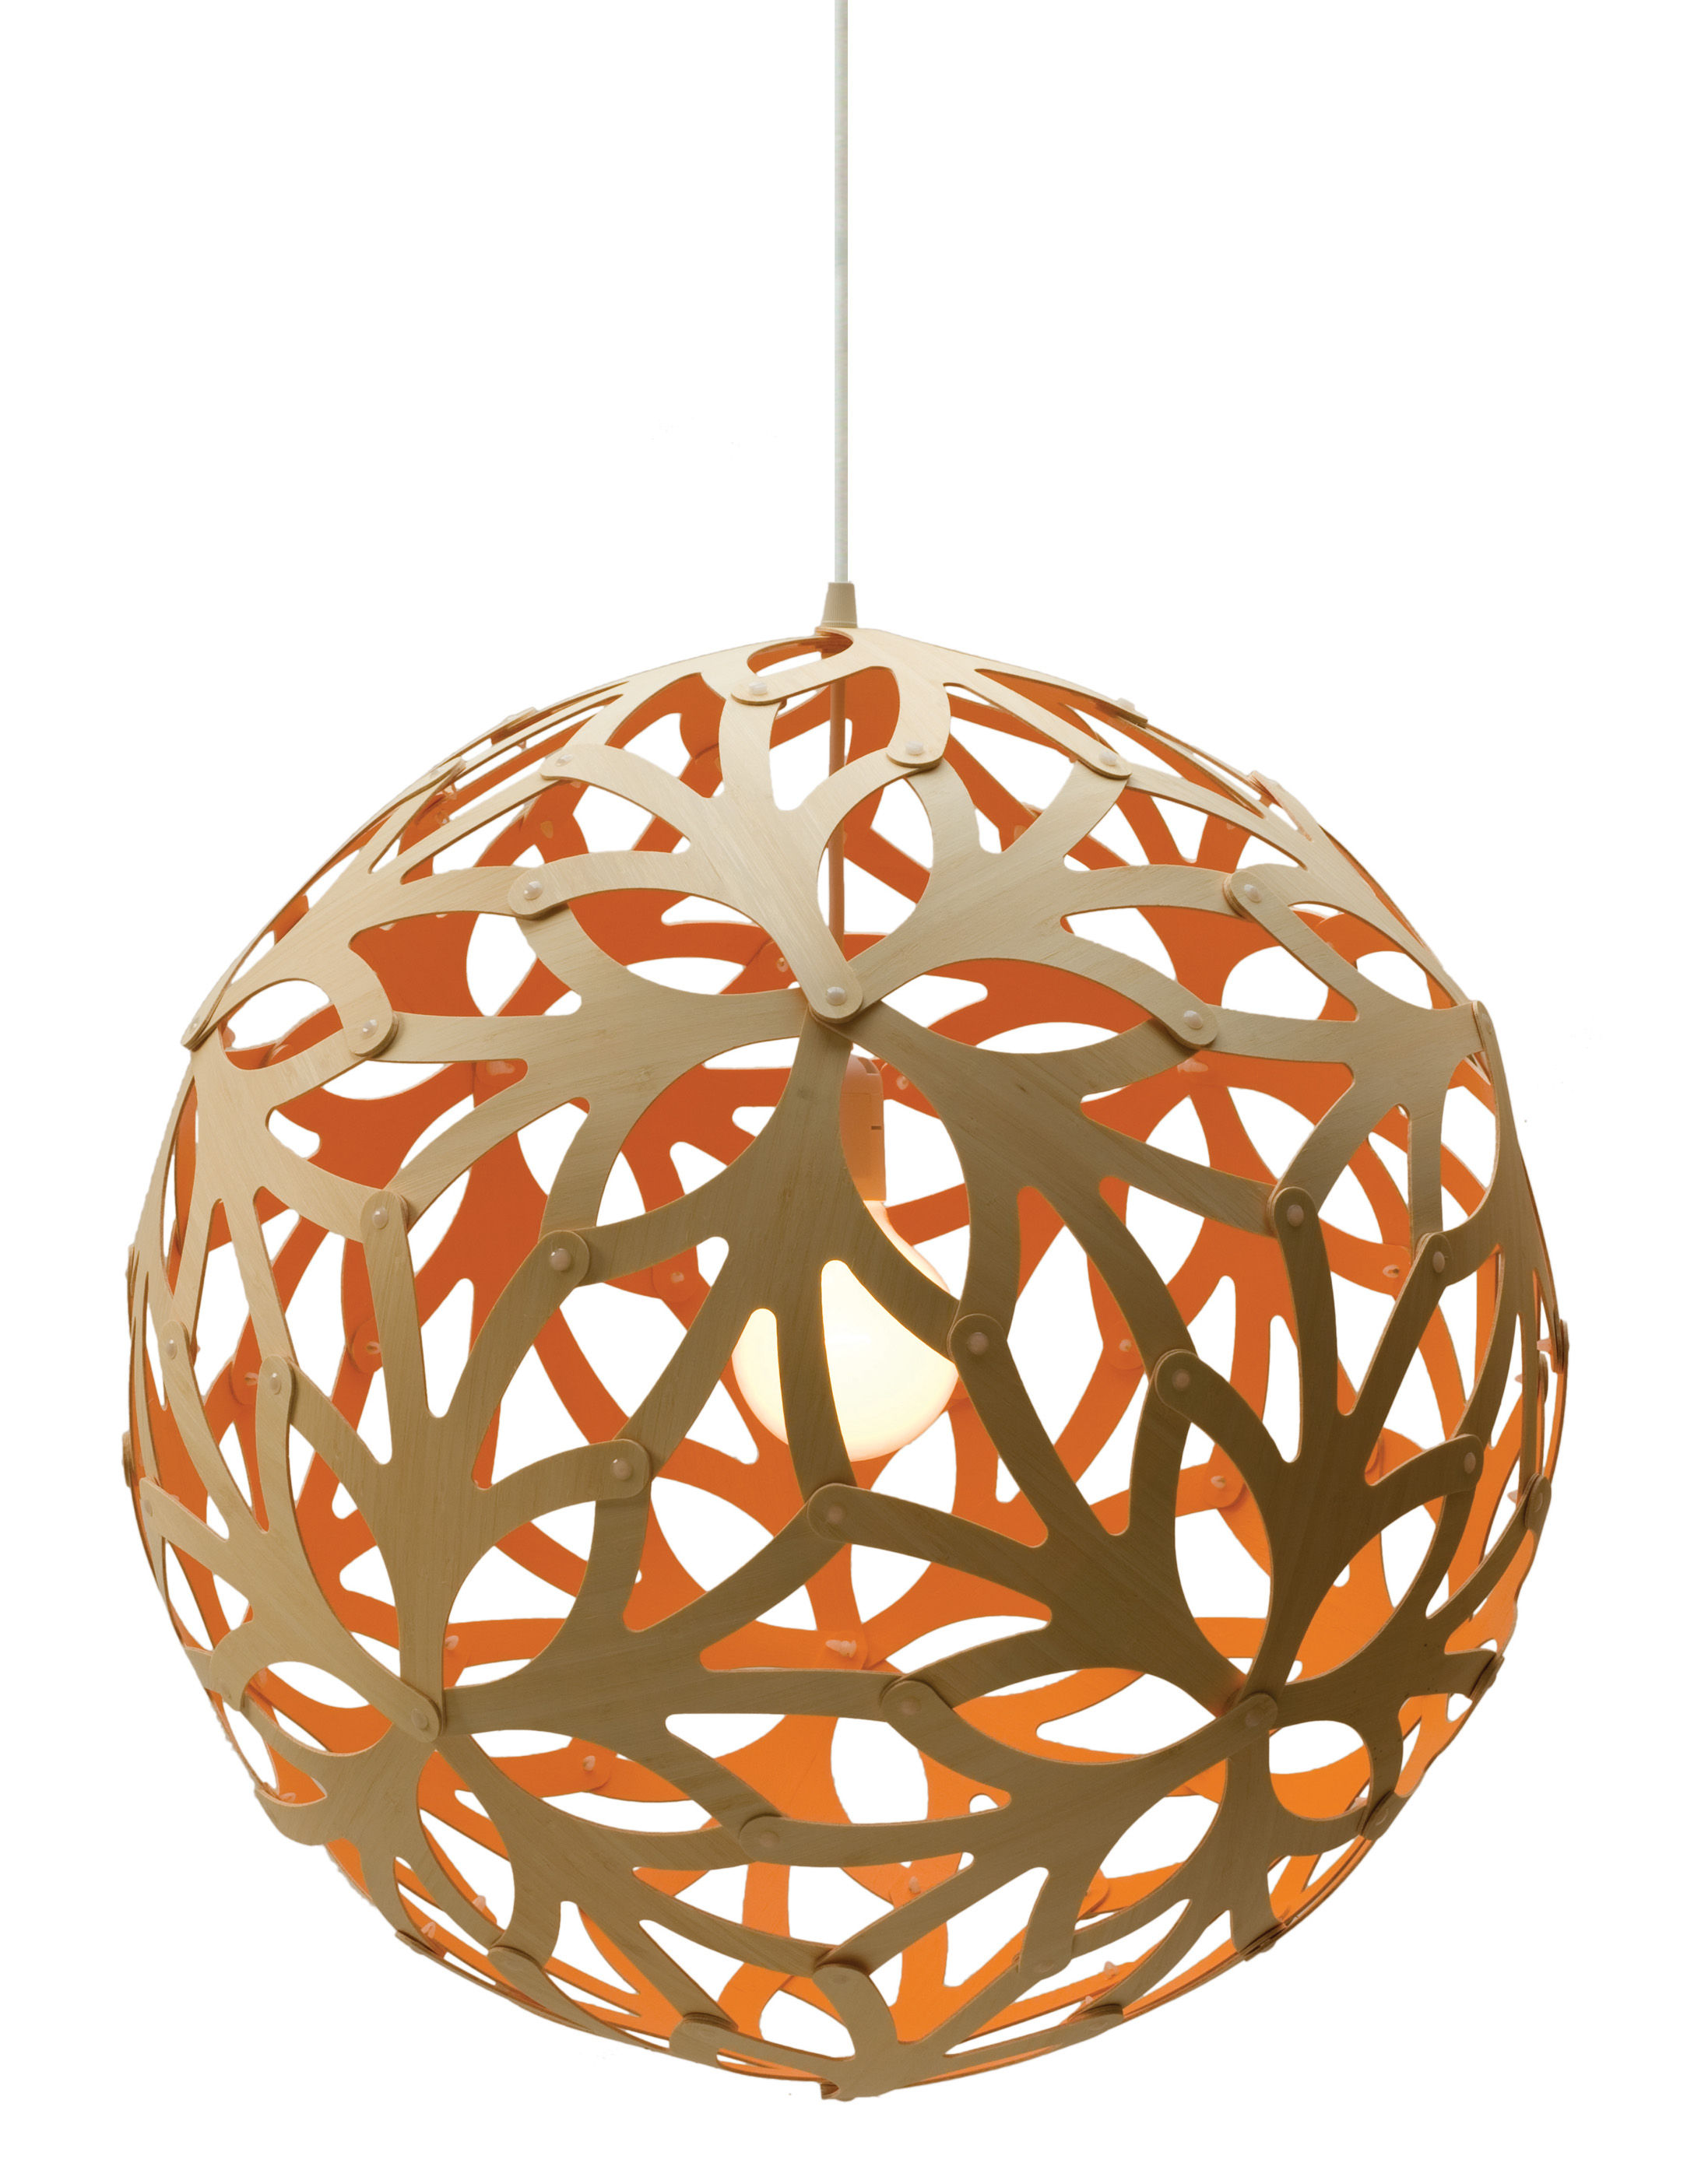 Lighting - Pendant Lighting - Floral Pendant - Ø 40 cm - Two-coloured by David Trubridge - Orange / natural wood - Bamboo